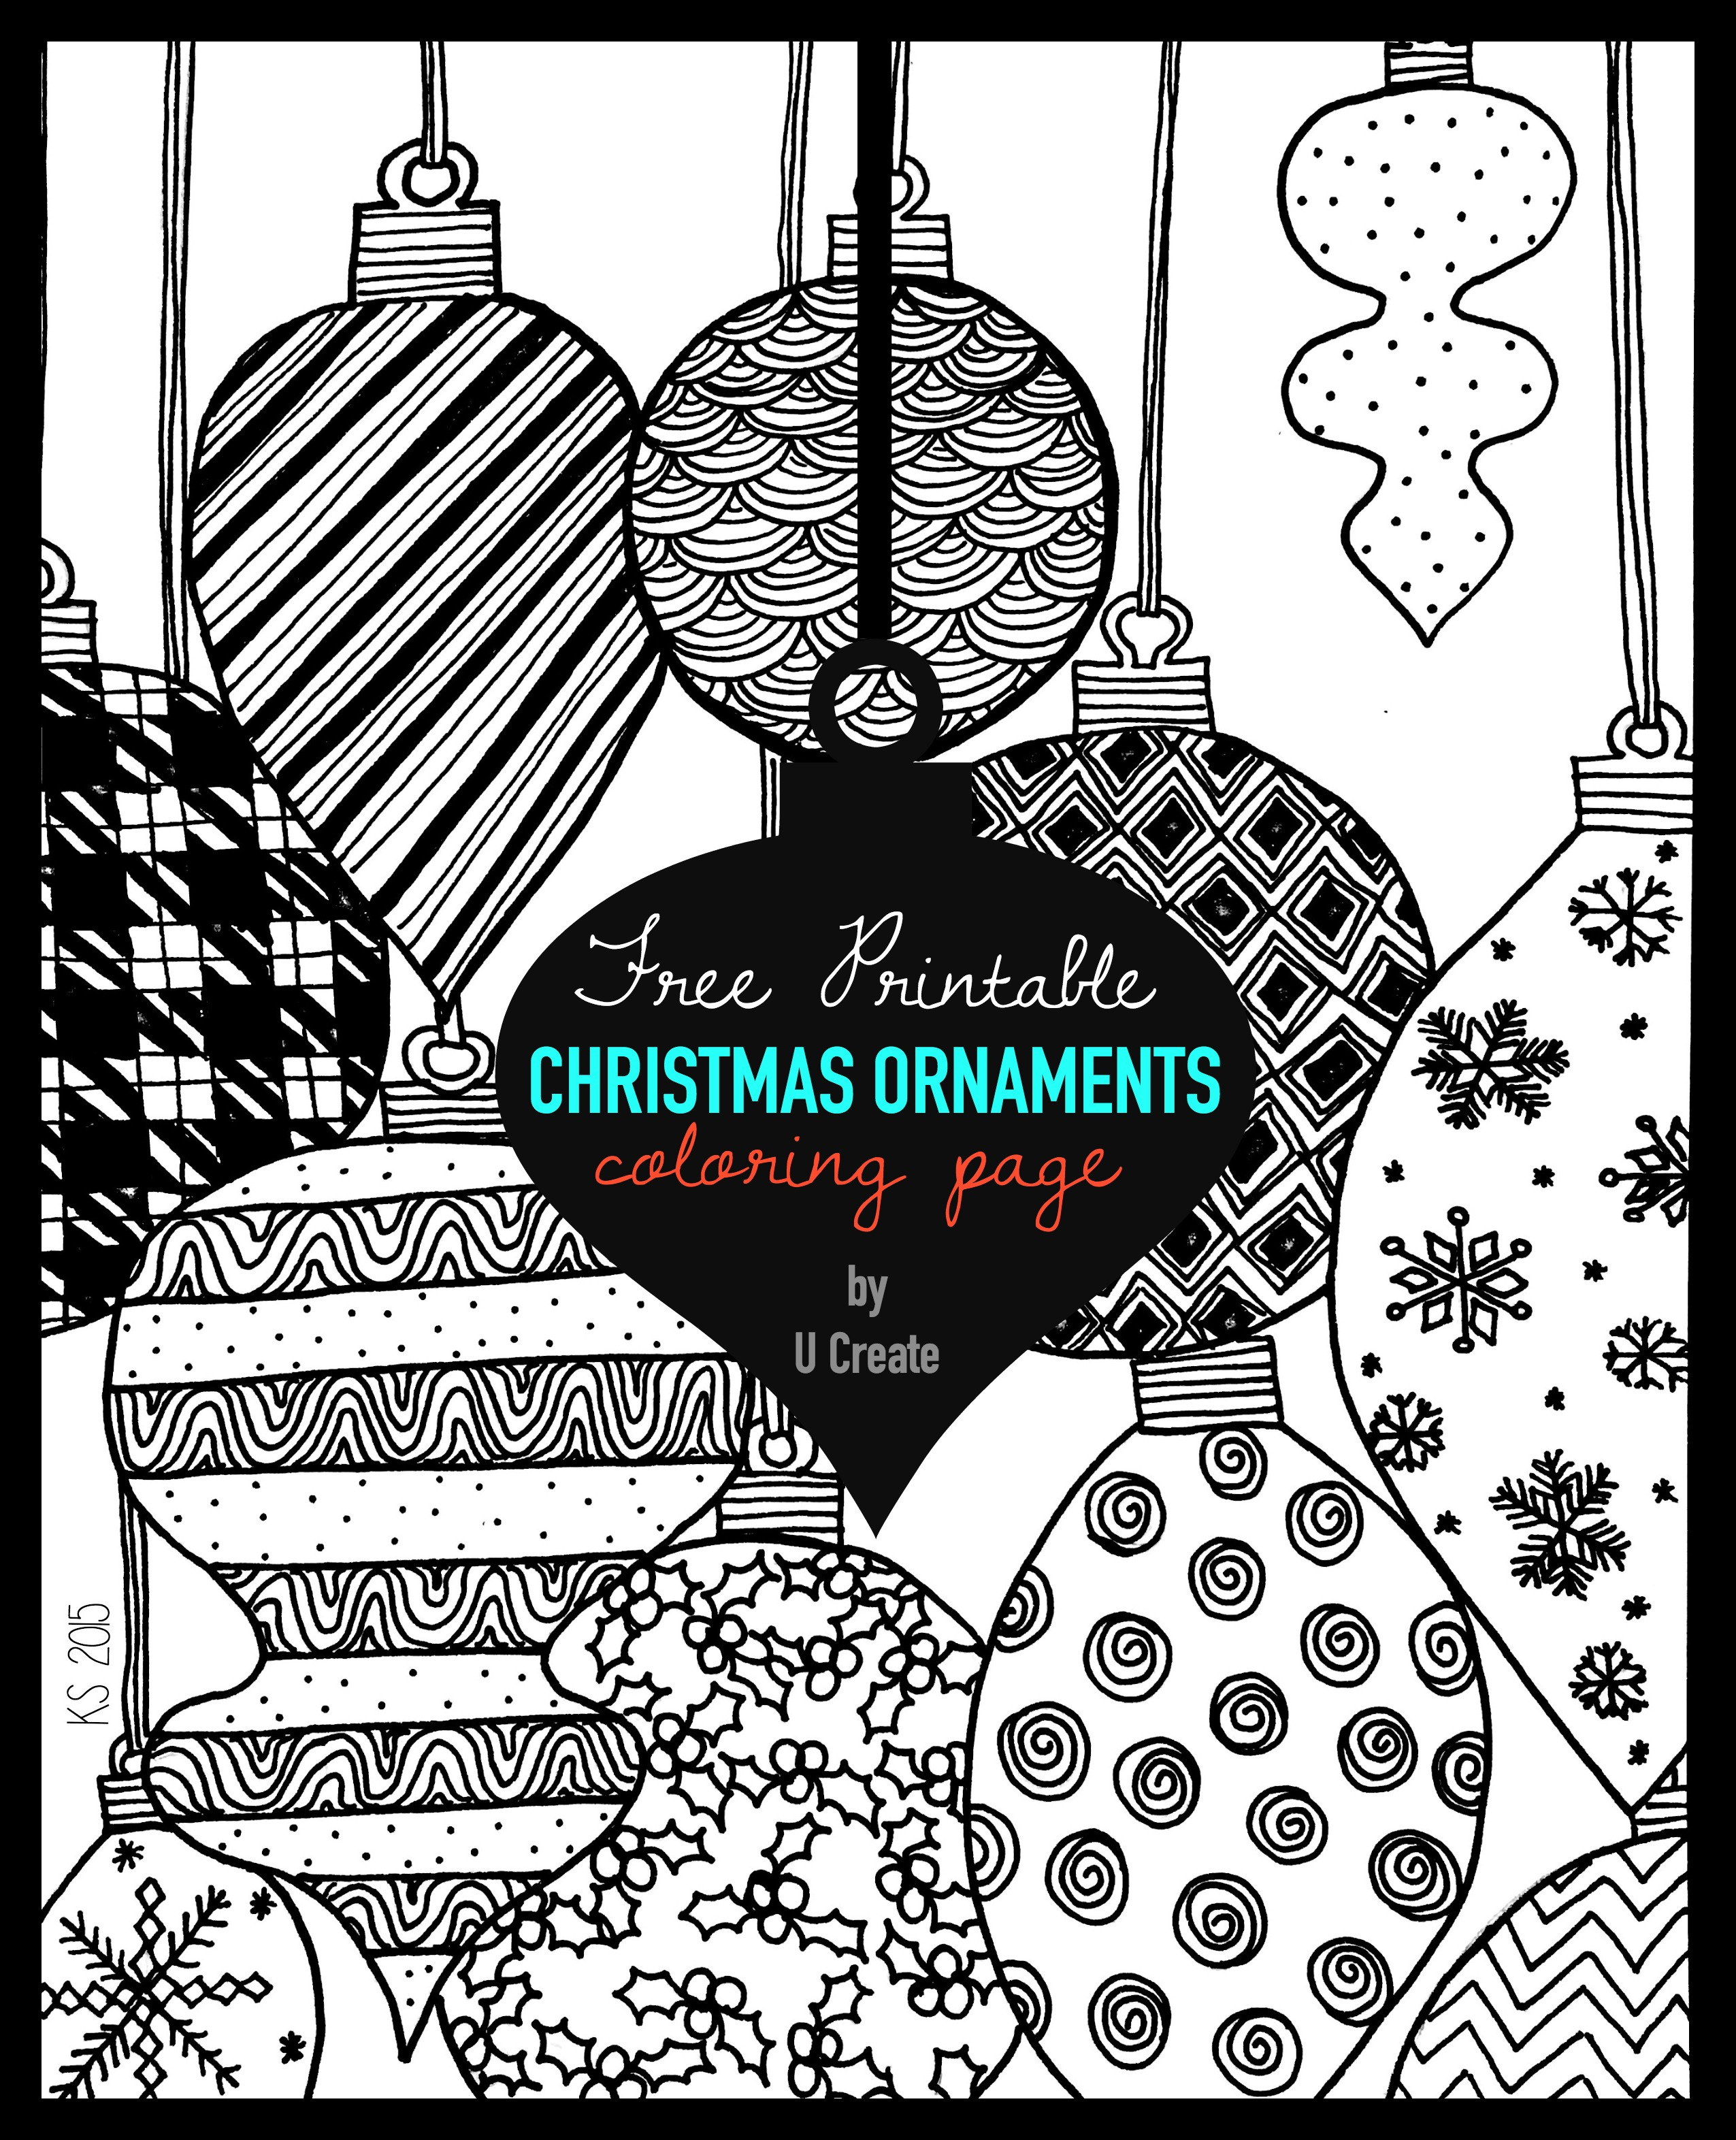 Christmas Ornaments Adult Coloring Page - U Create - Free Printable Christmas Tree Ornaments Coloring Pages